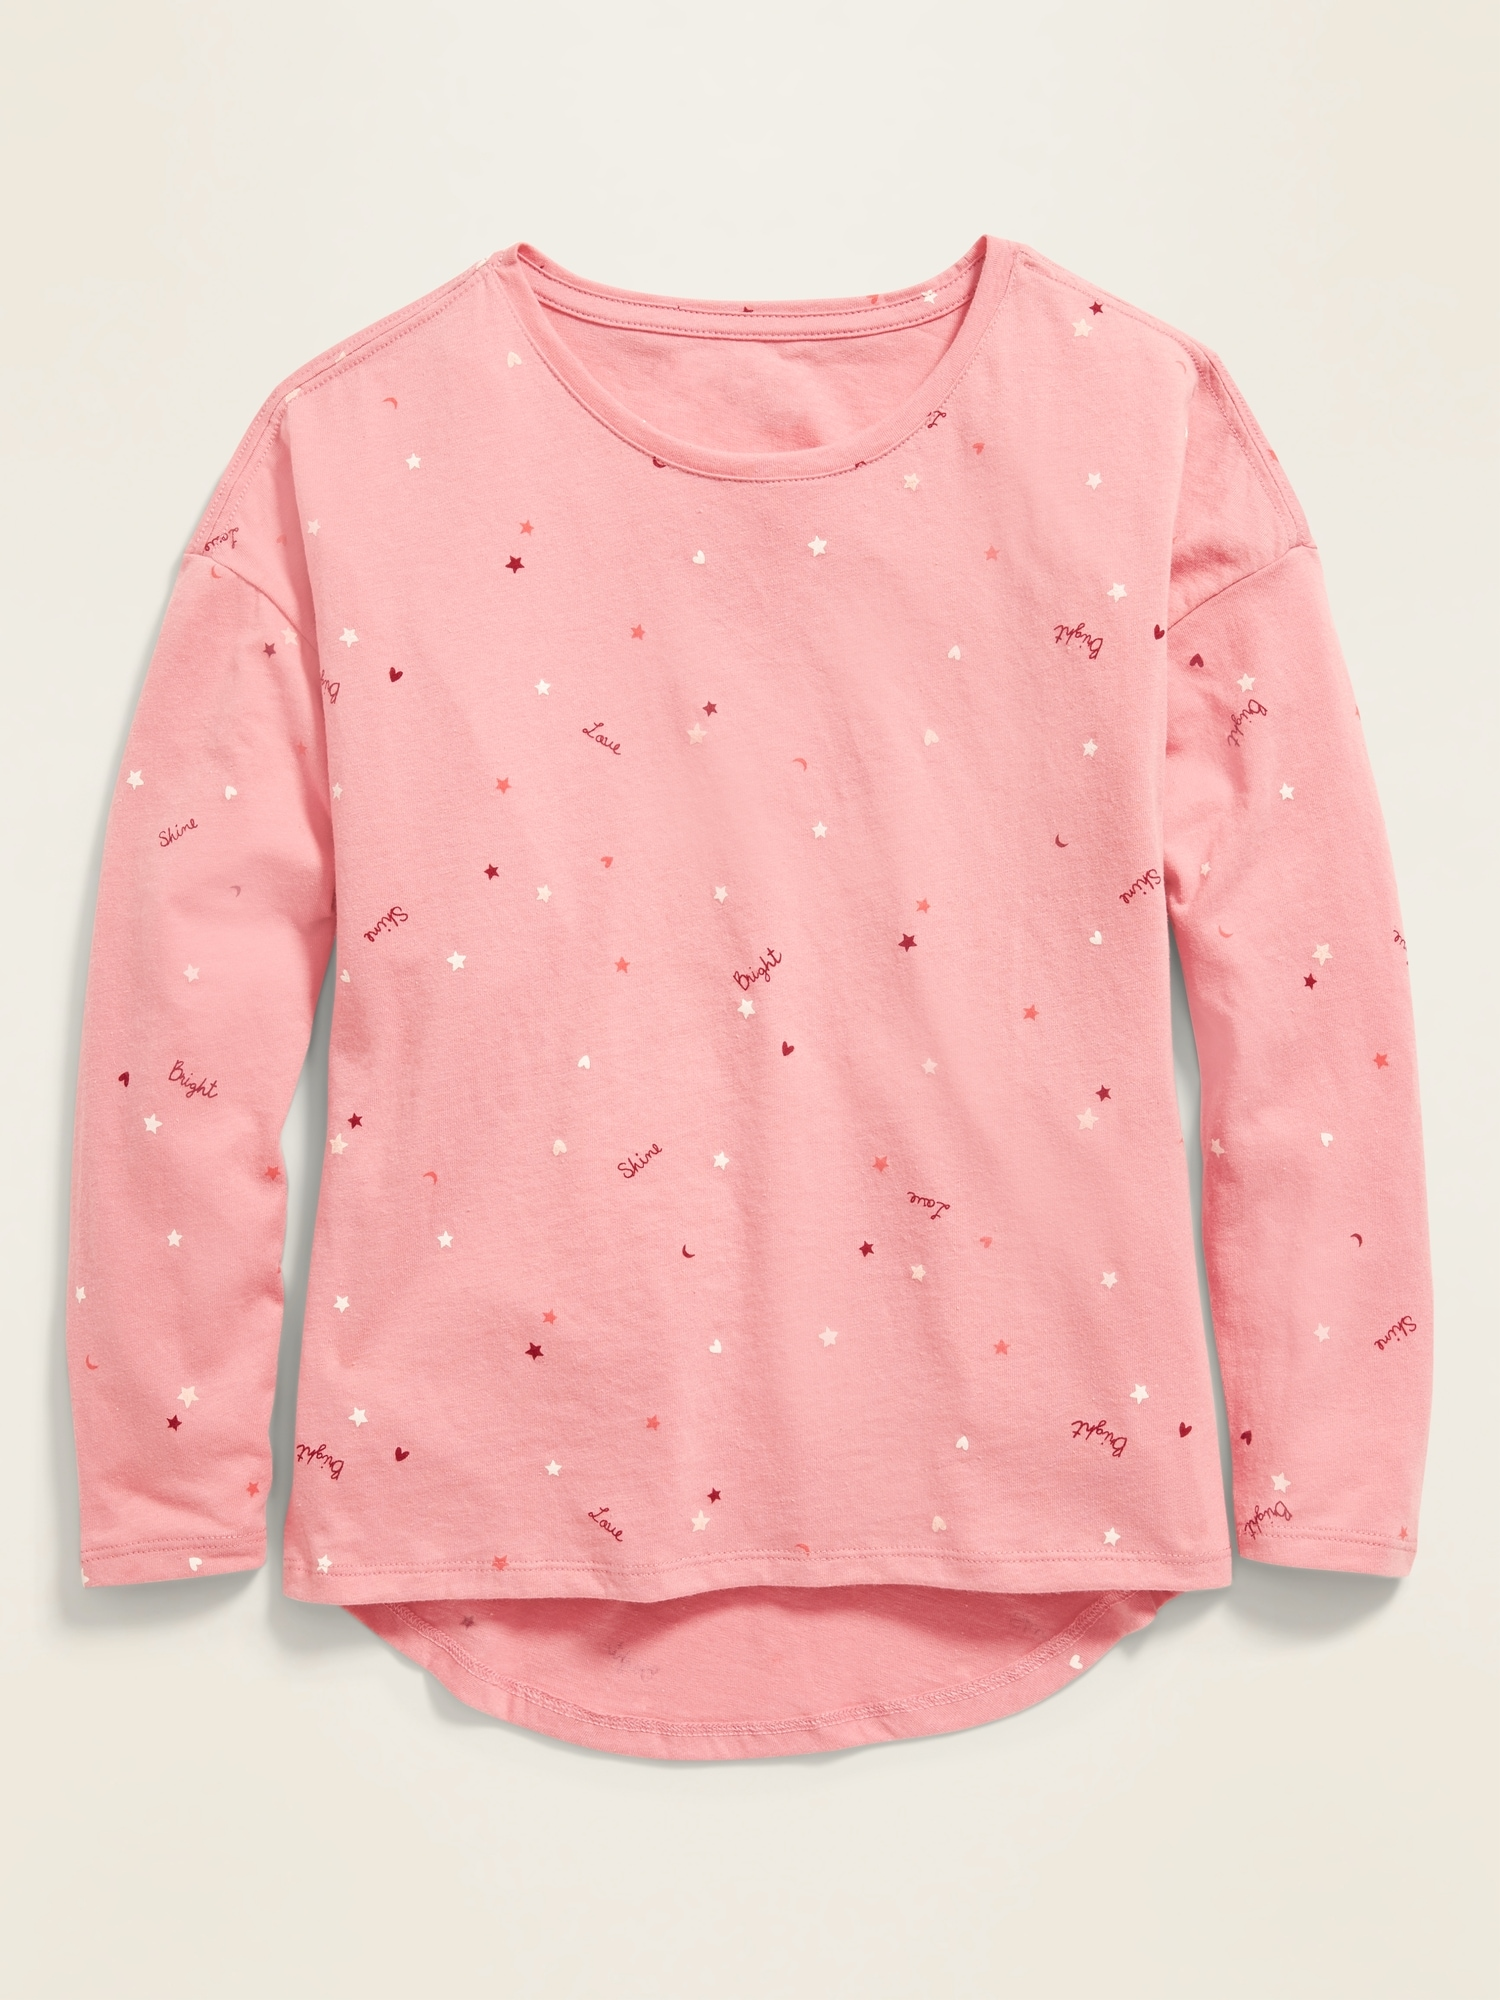 Softest Printed Long-Sleeve Tee for Girls